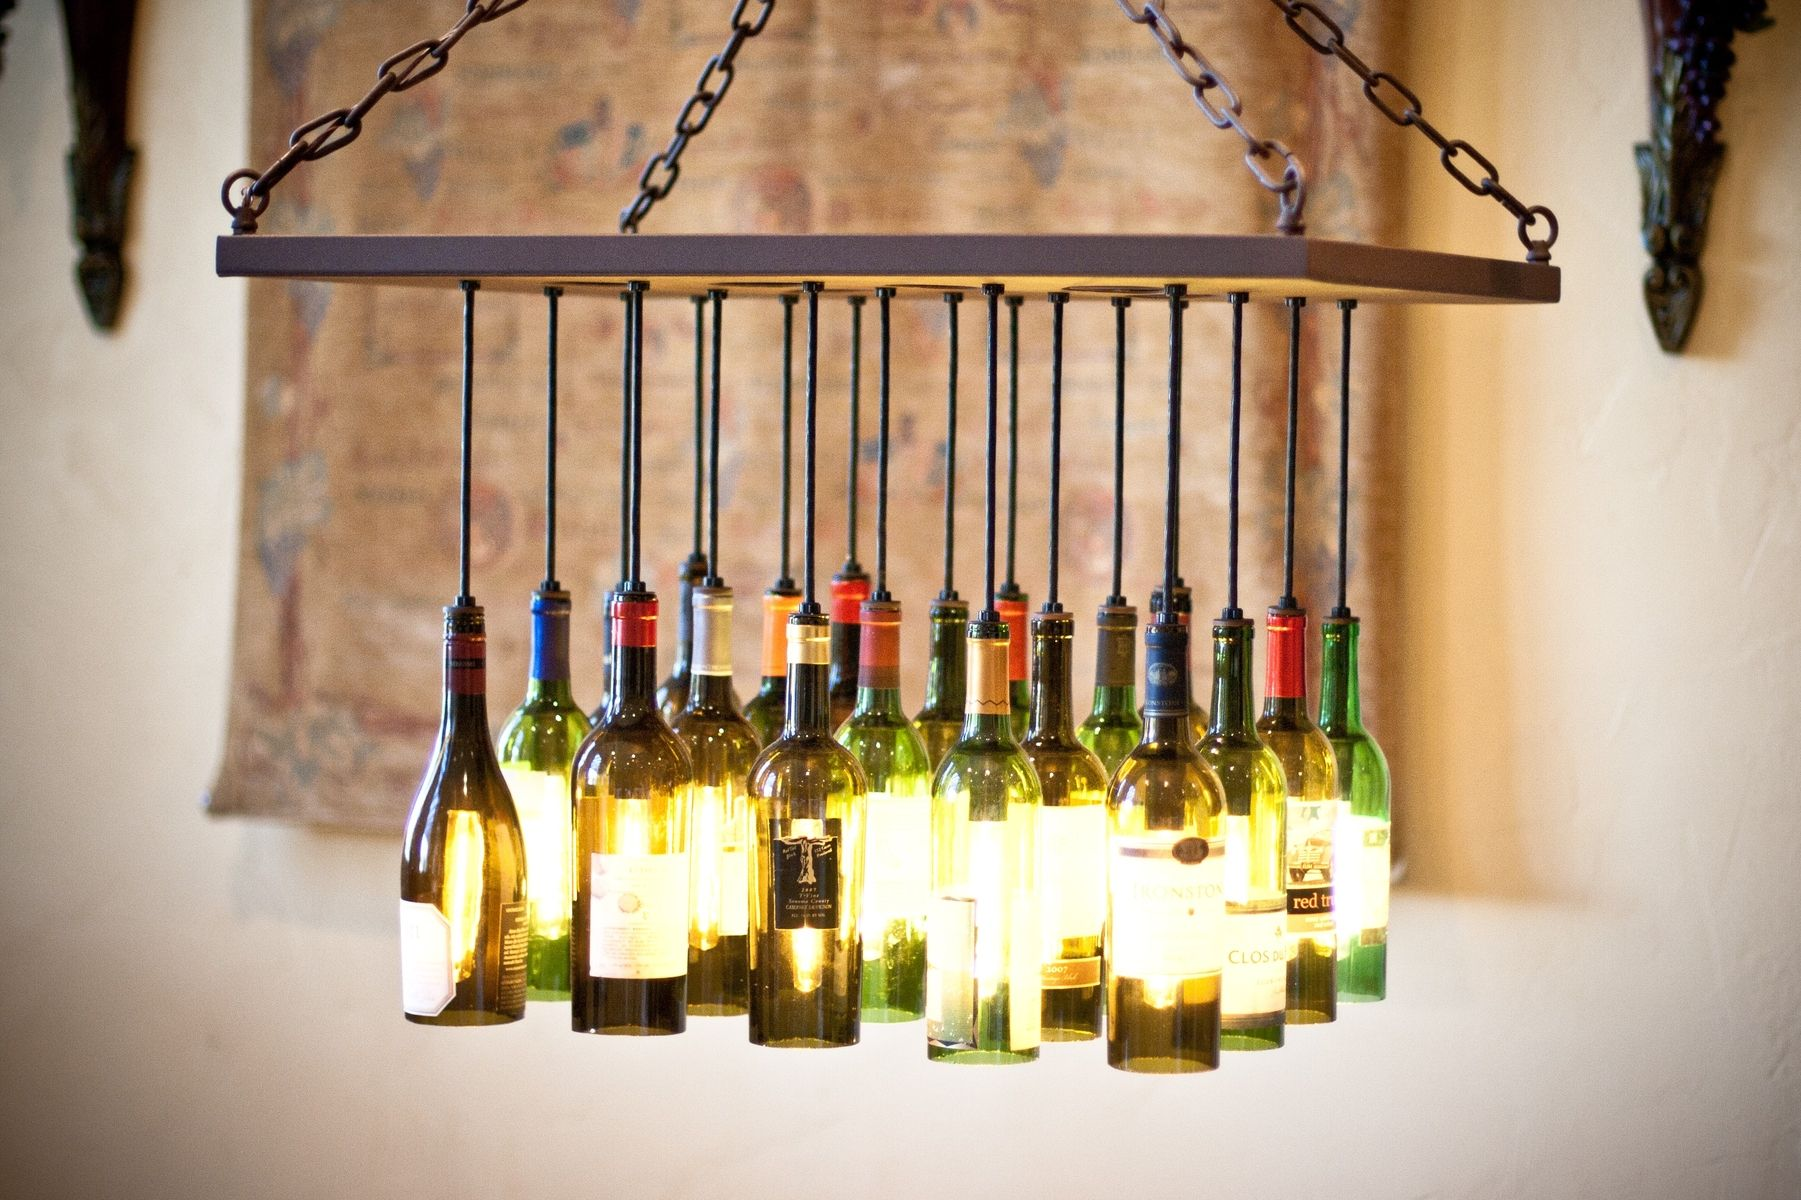 Empty wine bottles repurposed into light fittings